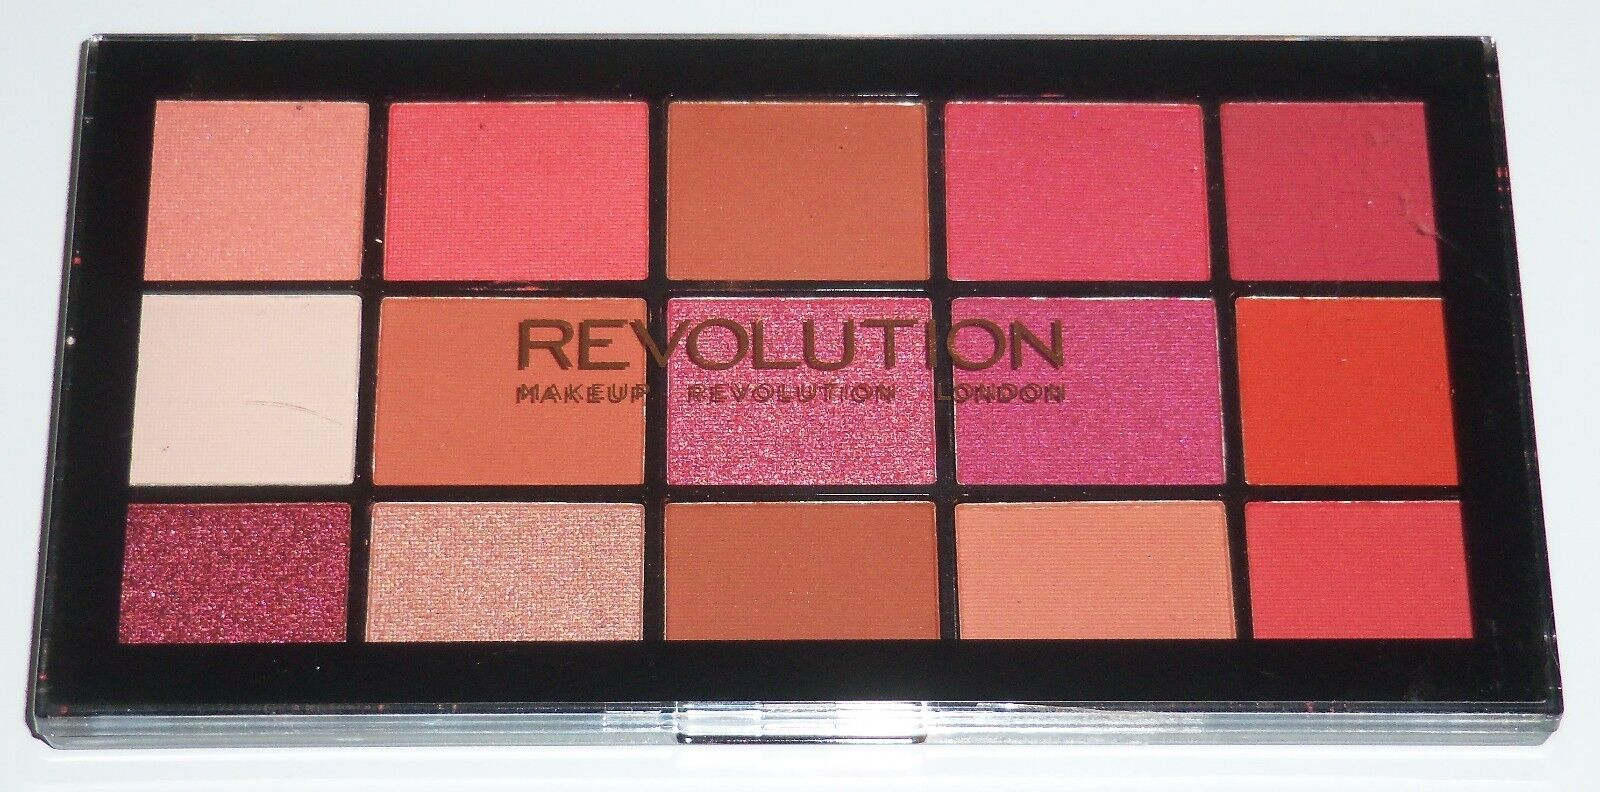 Makeup Revolution Reloaded Eyeshadow Palette, Iconic Newtral